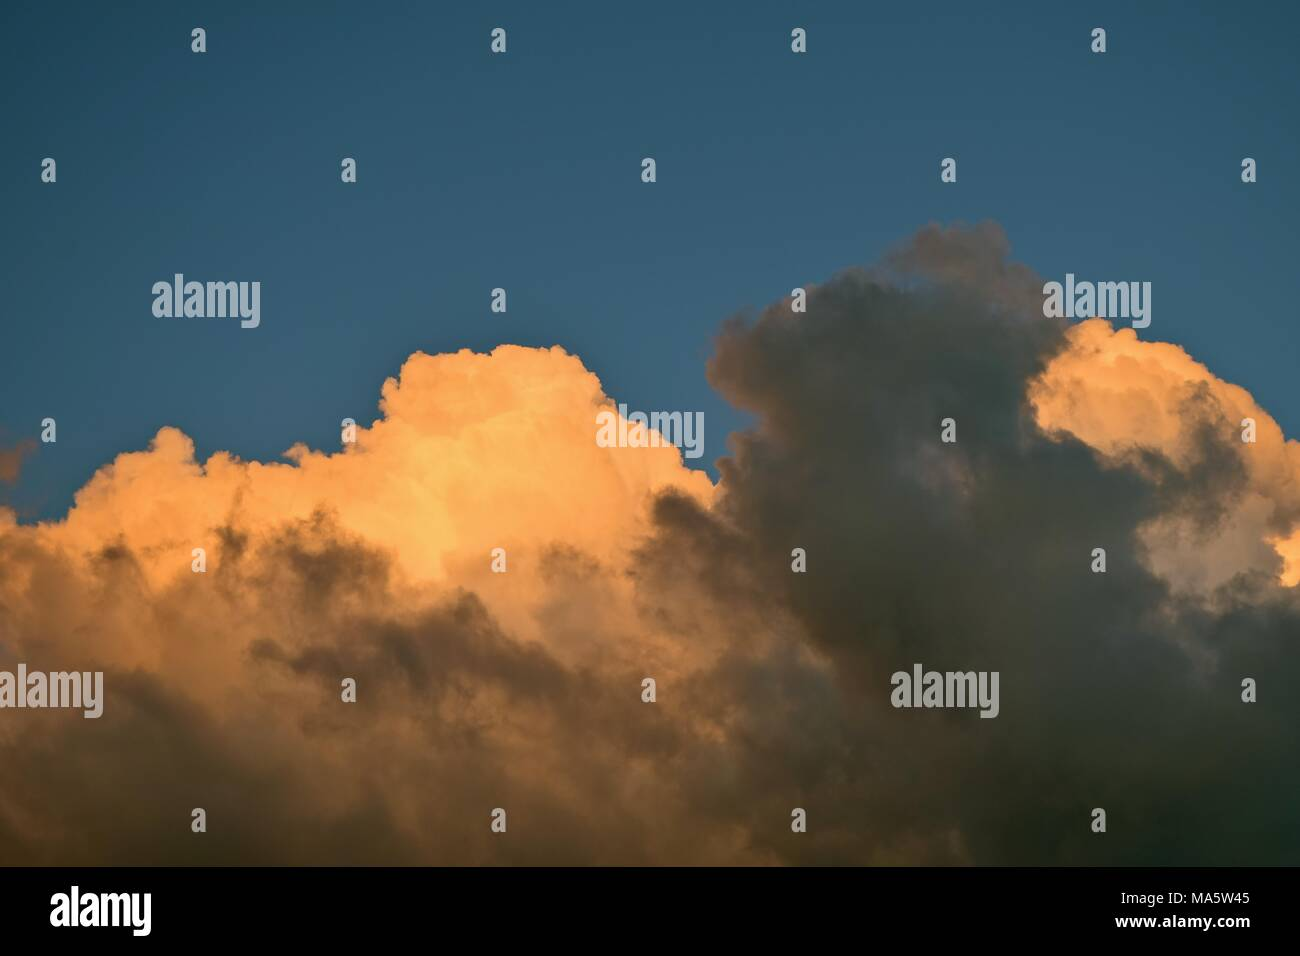 Stormy clouds are blowing in at dusk turning the skies dark. - Stock Image